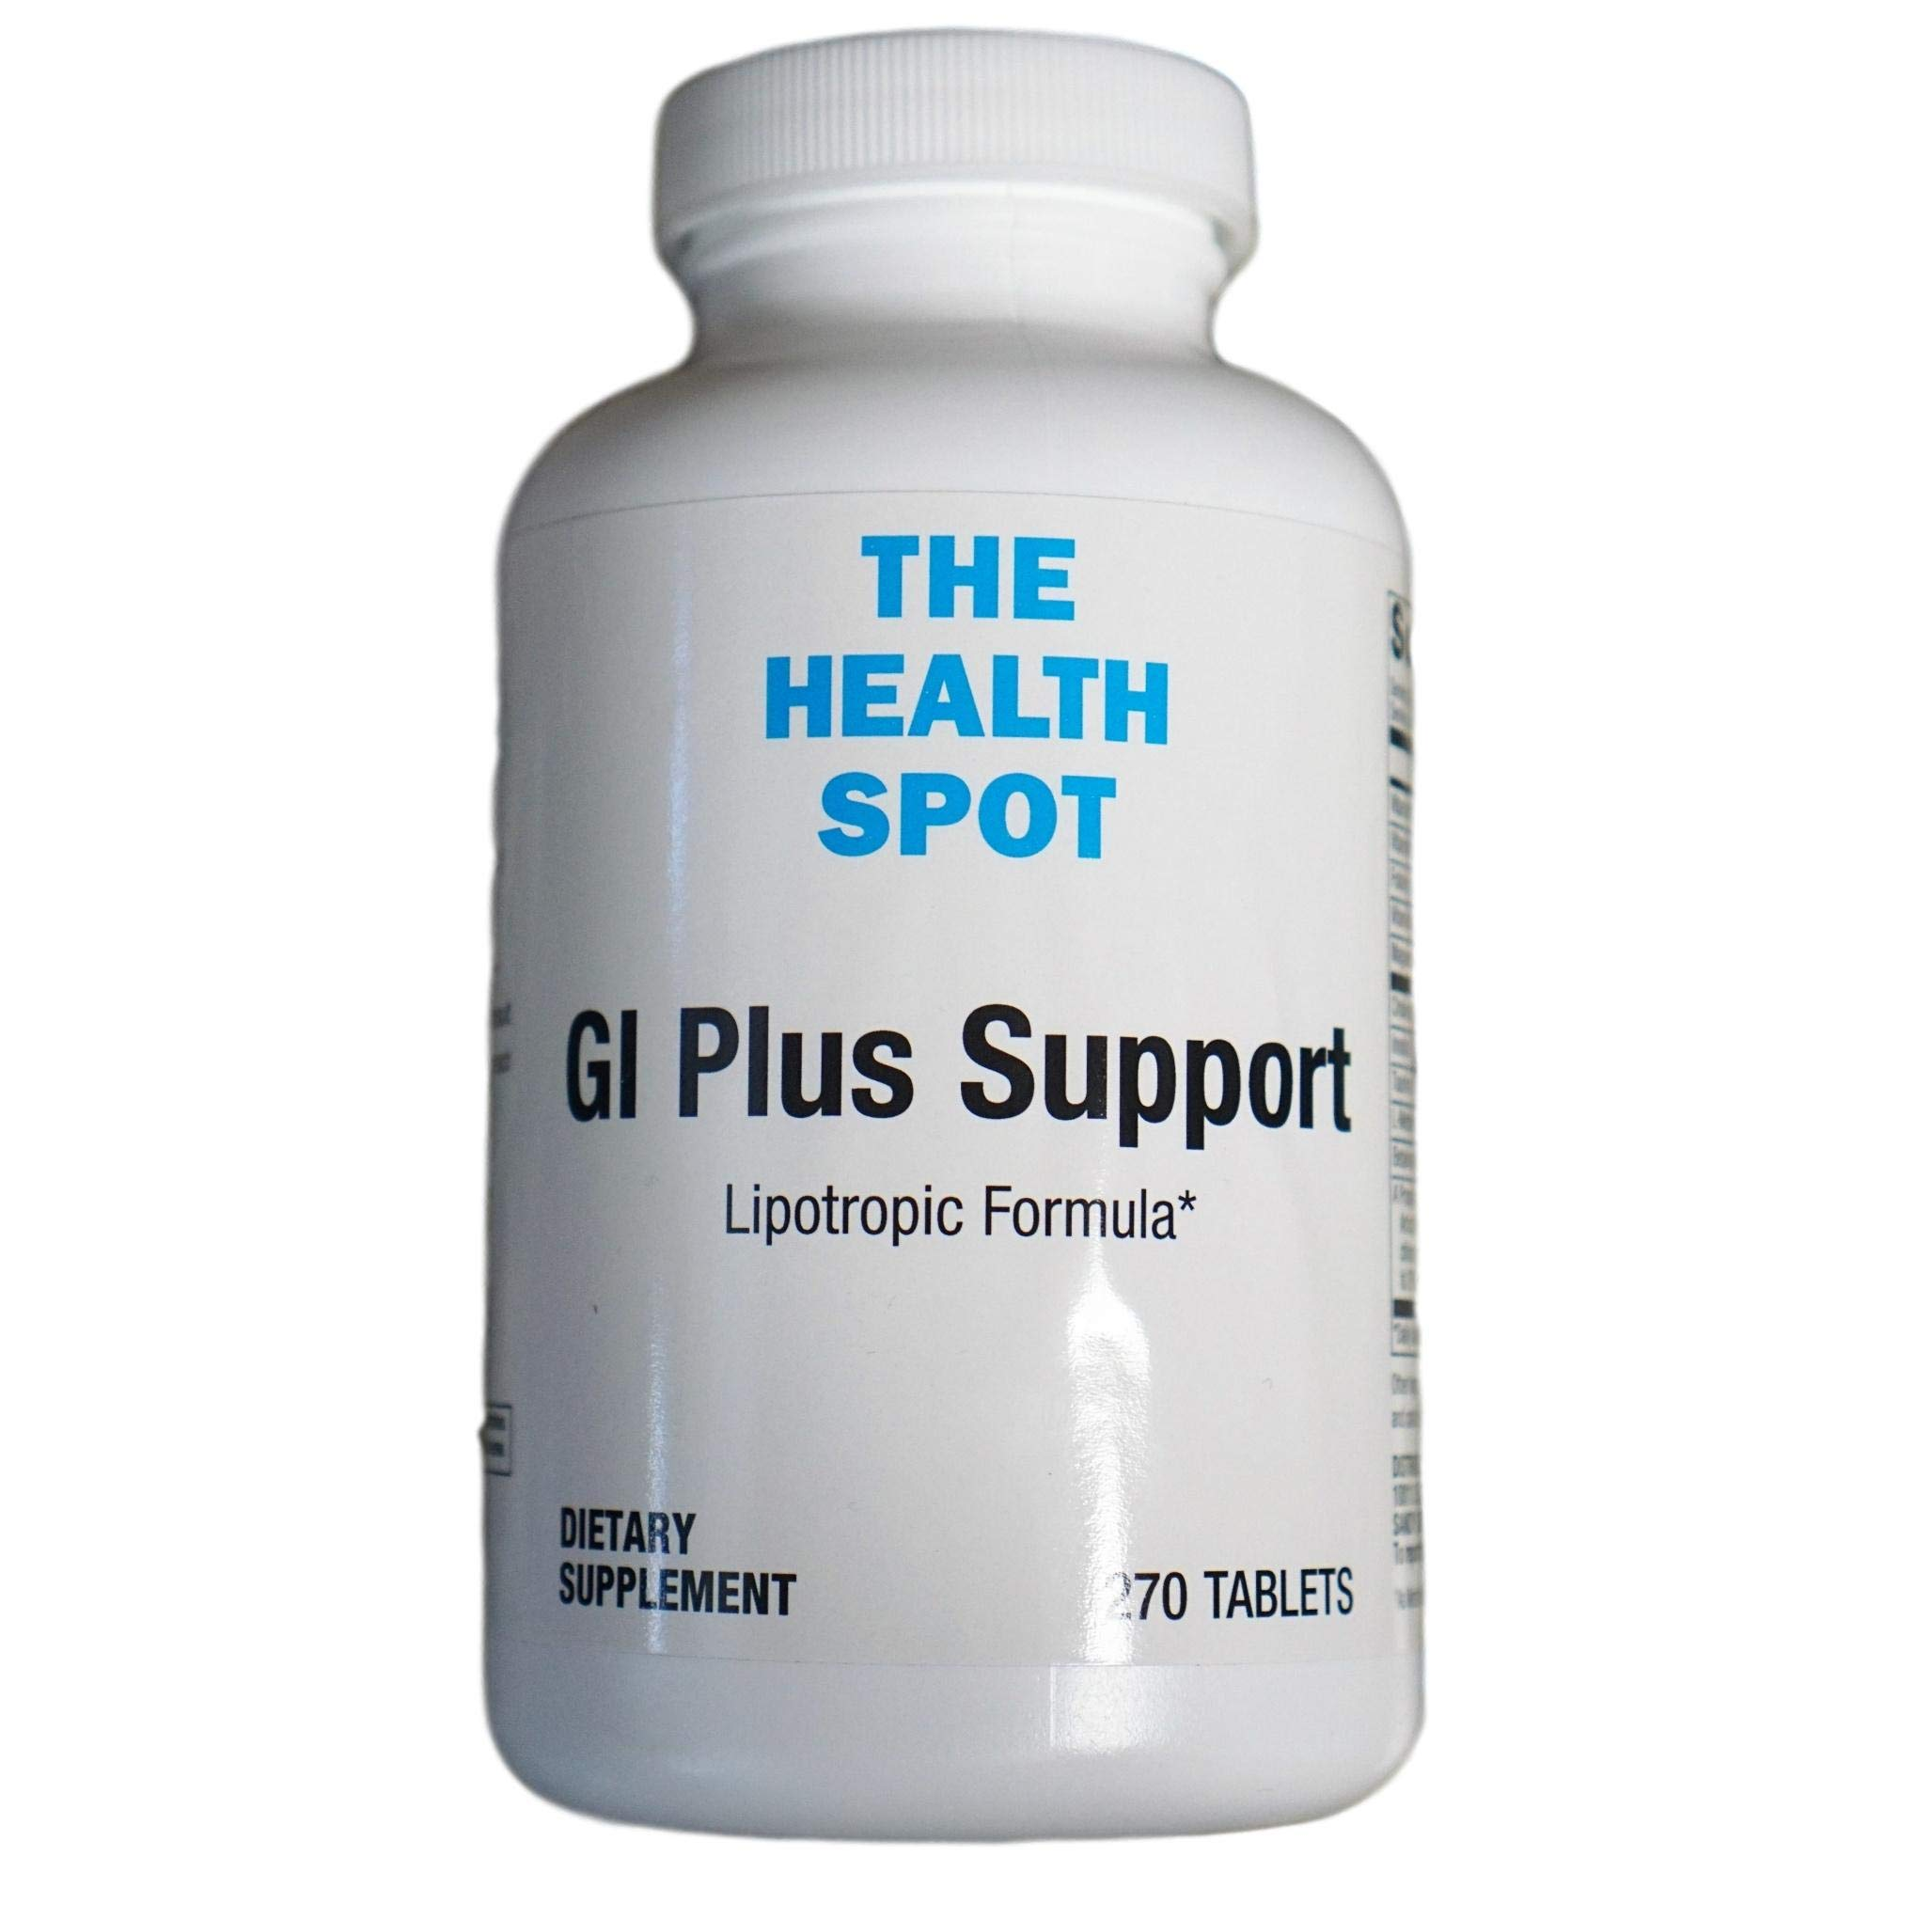 The Health Spot GI Plus Support Lipotropic Formula - Digestive Support Healthy Fat Metabolism Supplement, Supports Liver, Gallbladder, Digestion Non-GMO, Vegan, Gluten Free, Soy Free. 270 Tablets.